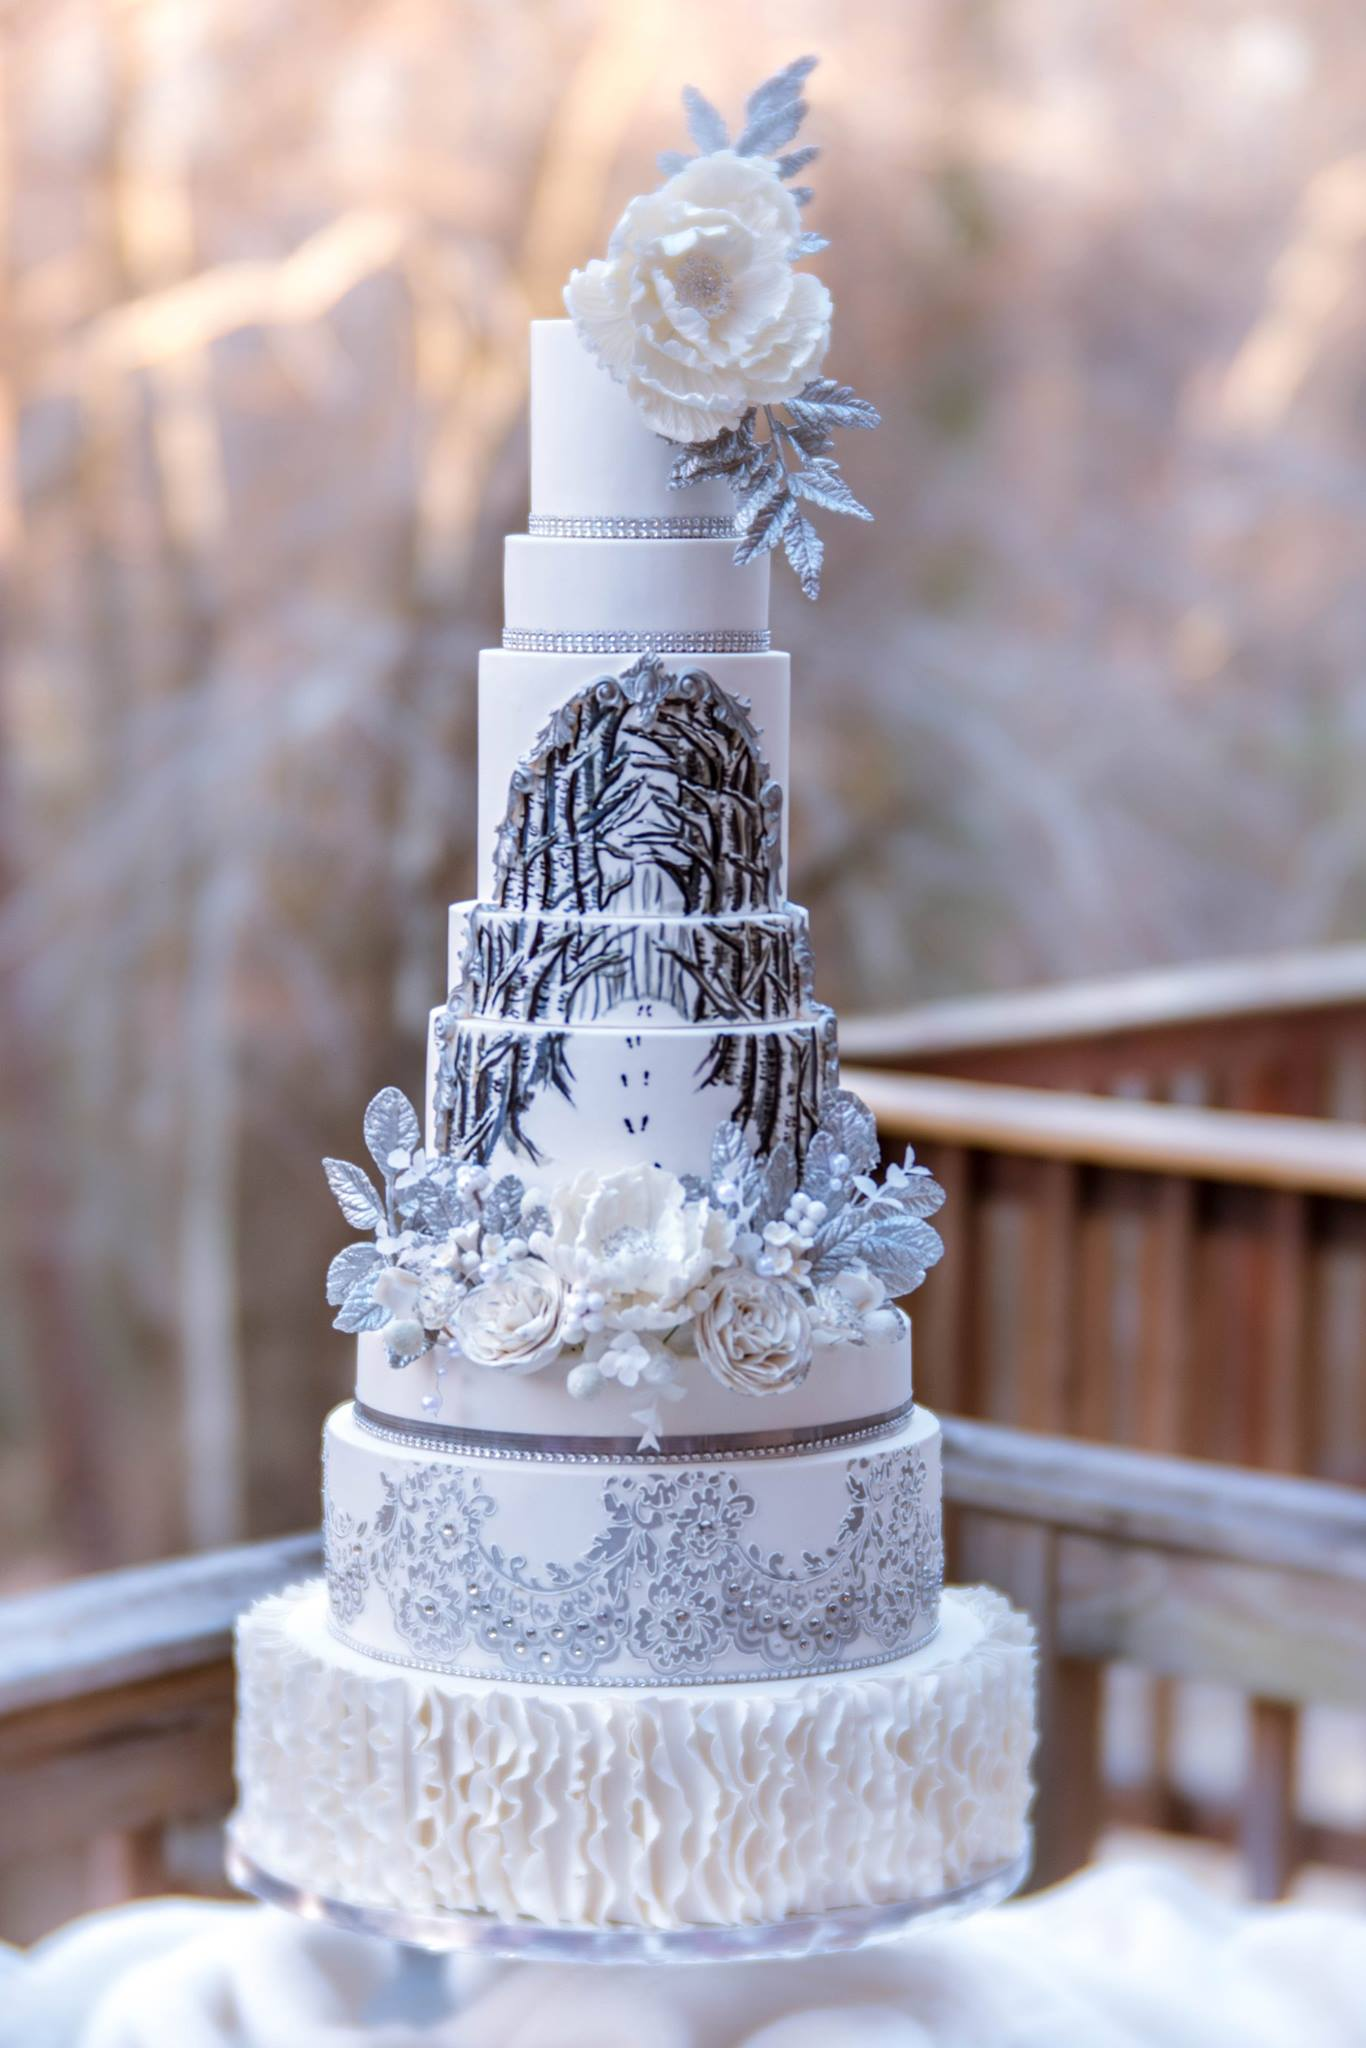 Rent the Cake - This entirely faux wedding cake is indistinguishable from the real thing and can be rented for less than 1/3rd of the cost of the real cake.